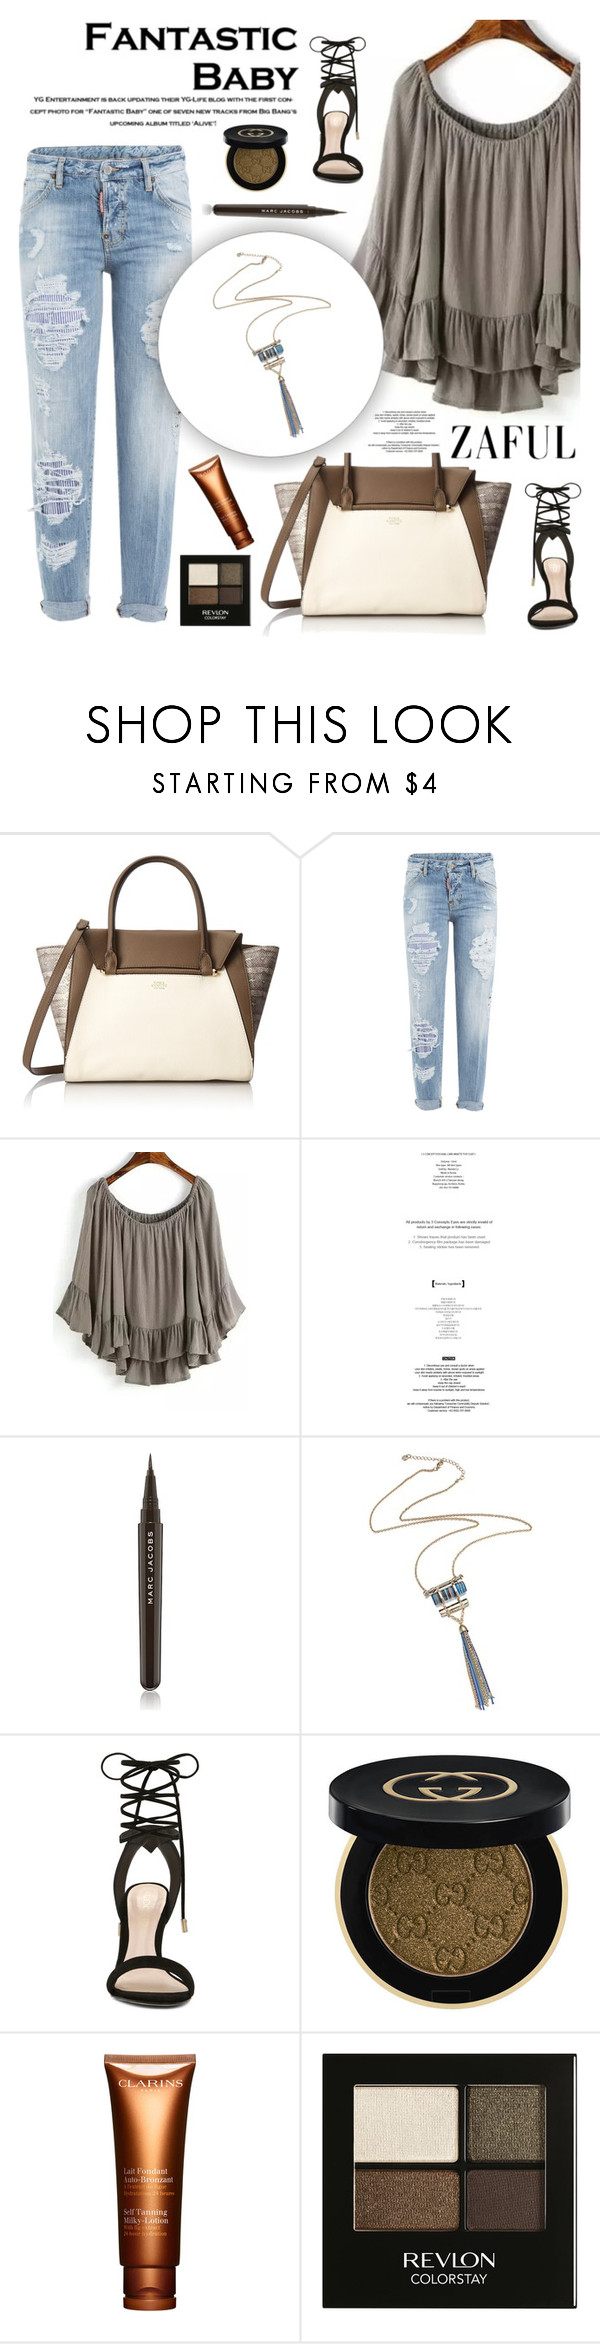 """Zaful 16"" by sabinakopic ❤ liked on Polyvore featuring Vince Camuto, Dsquared2, Marc Jacobs, ALDO, Gucci, Clarins, Revlon, bestylish, zaful and lovezaful"